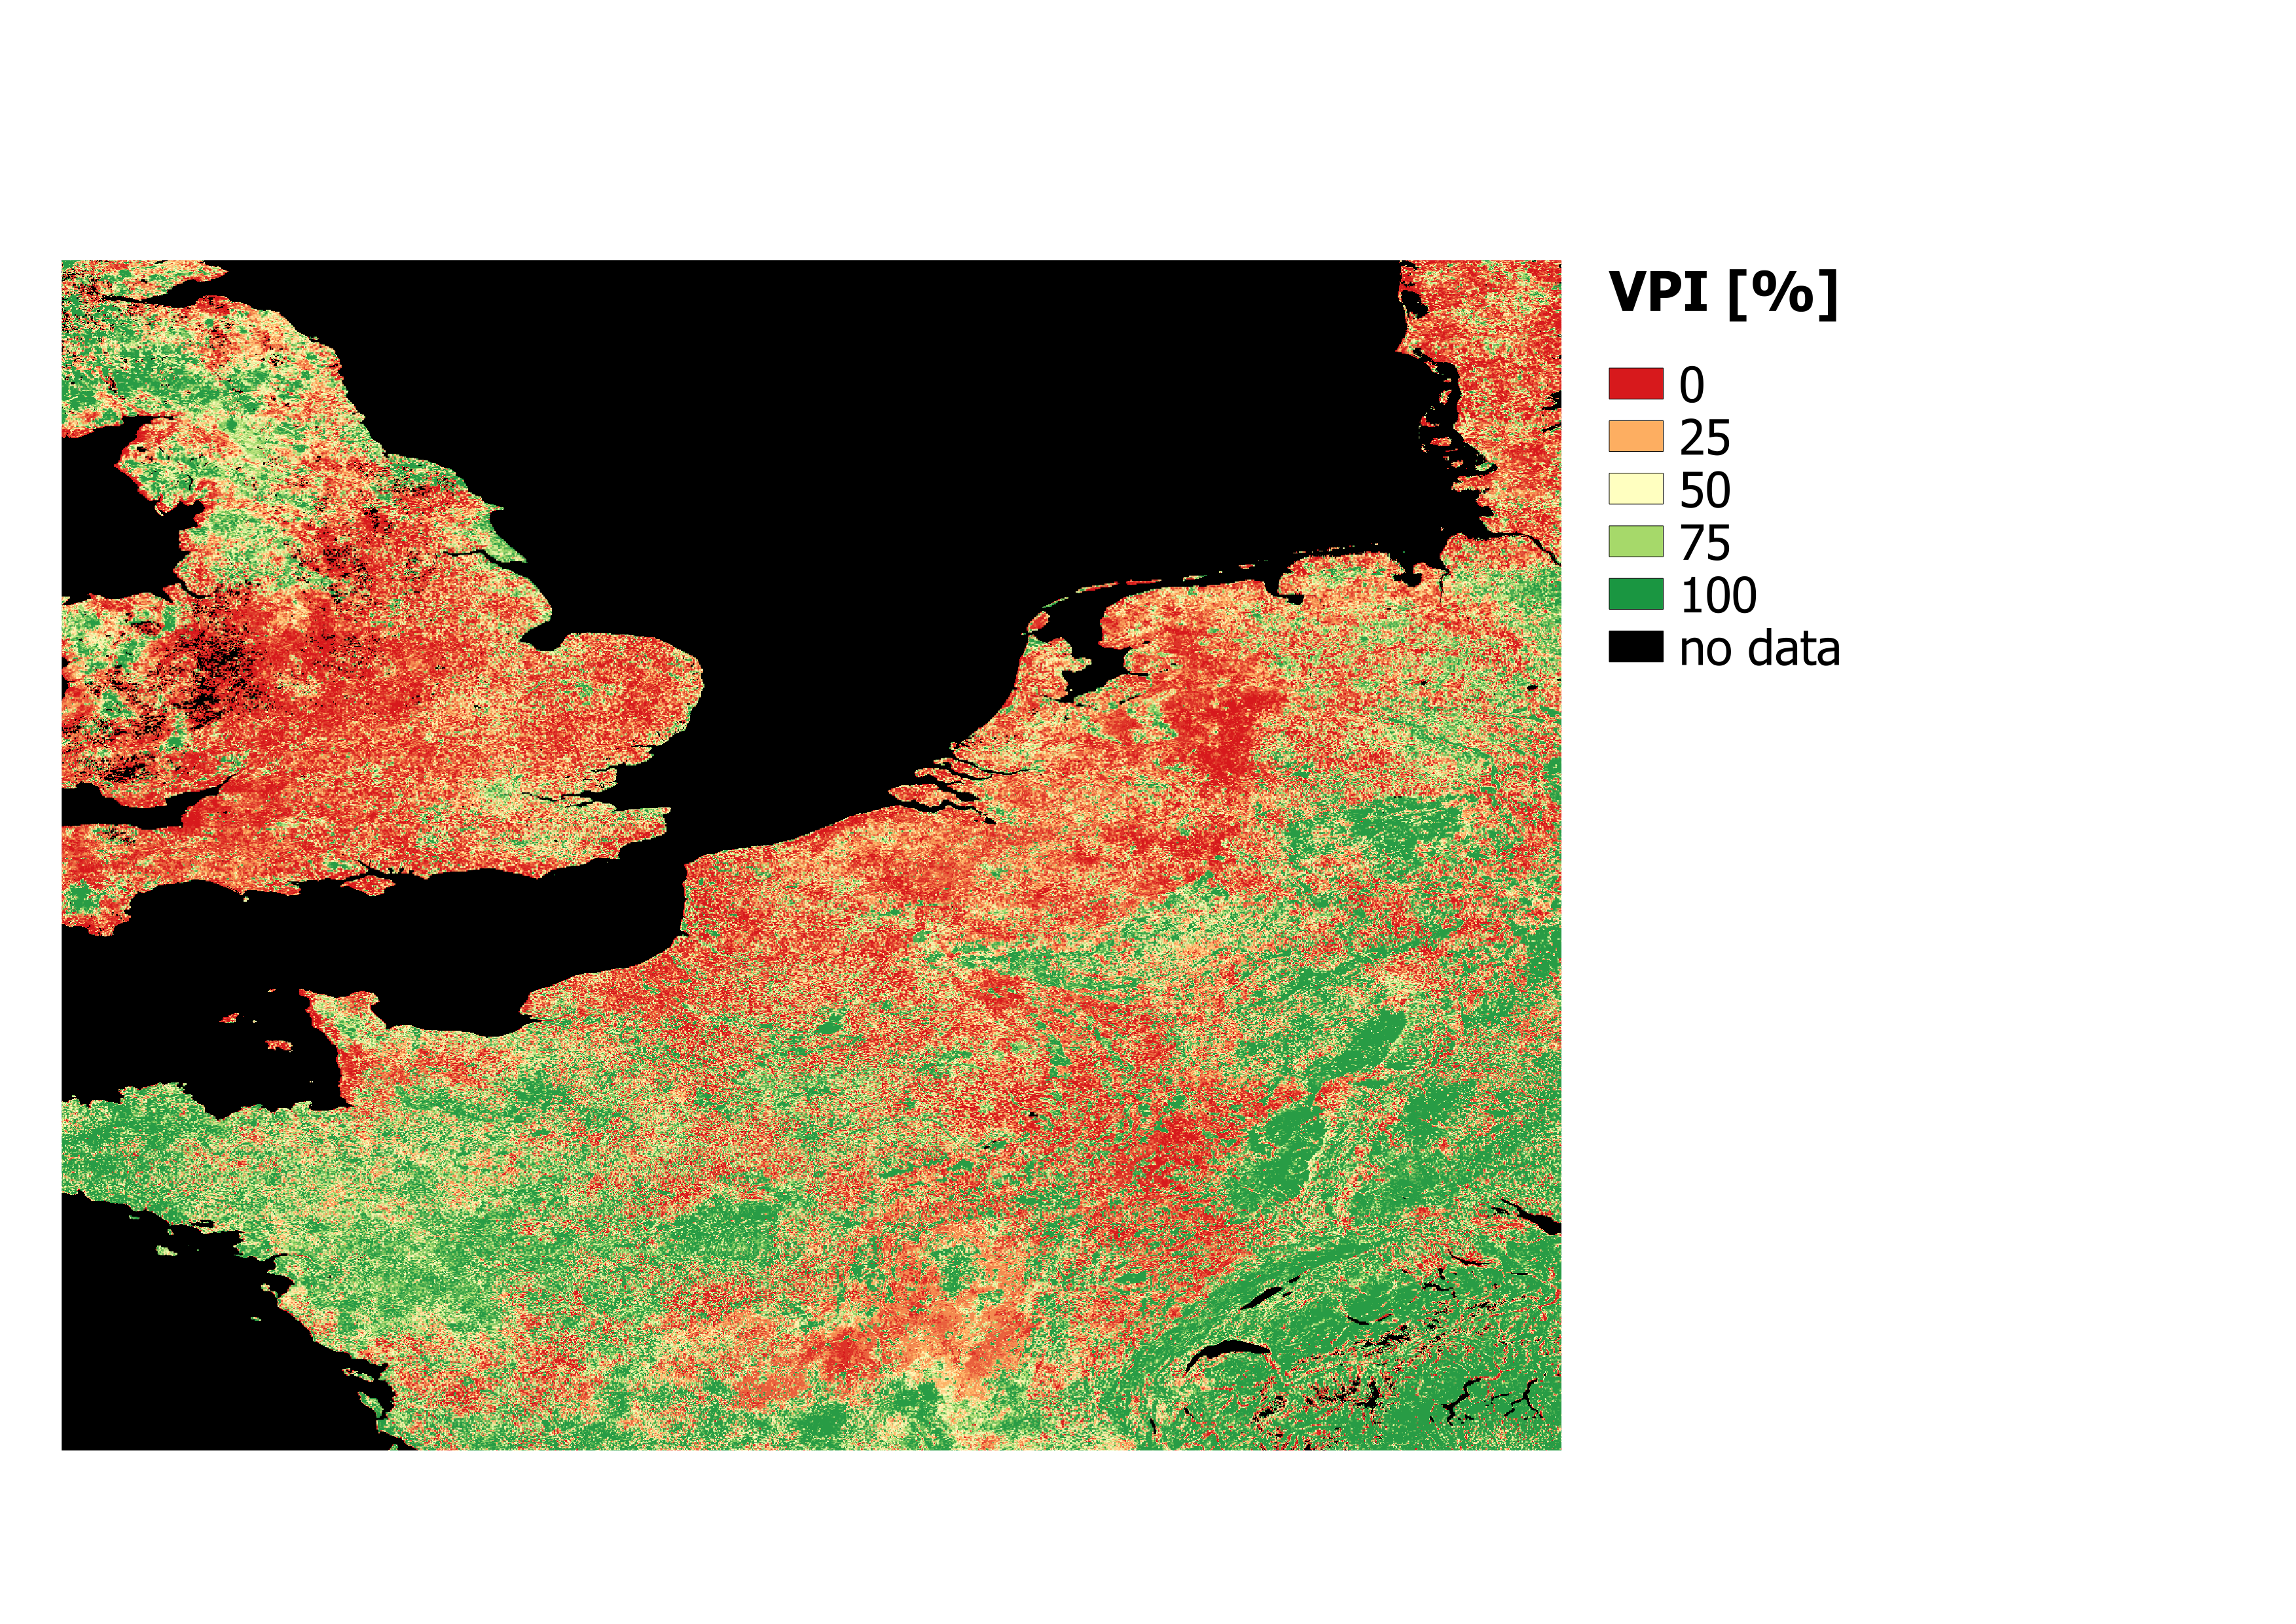 Vegetation Productivity Index (VPI) for the last dekad of July 2018 which clearly shows that the majority of the area in North western Europe is in the  lowest 25% ever measured by satellite data